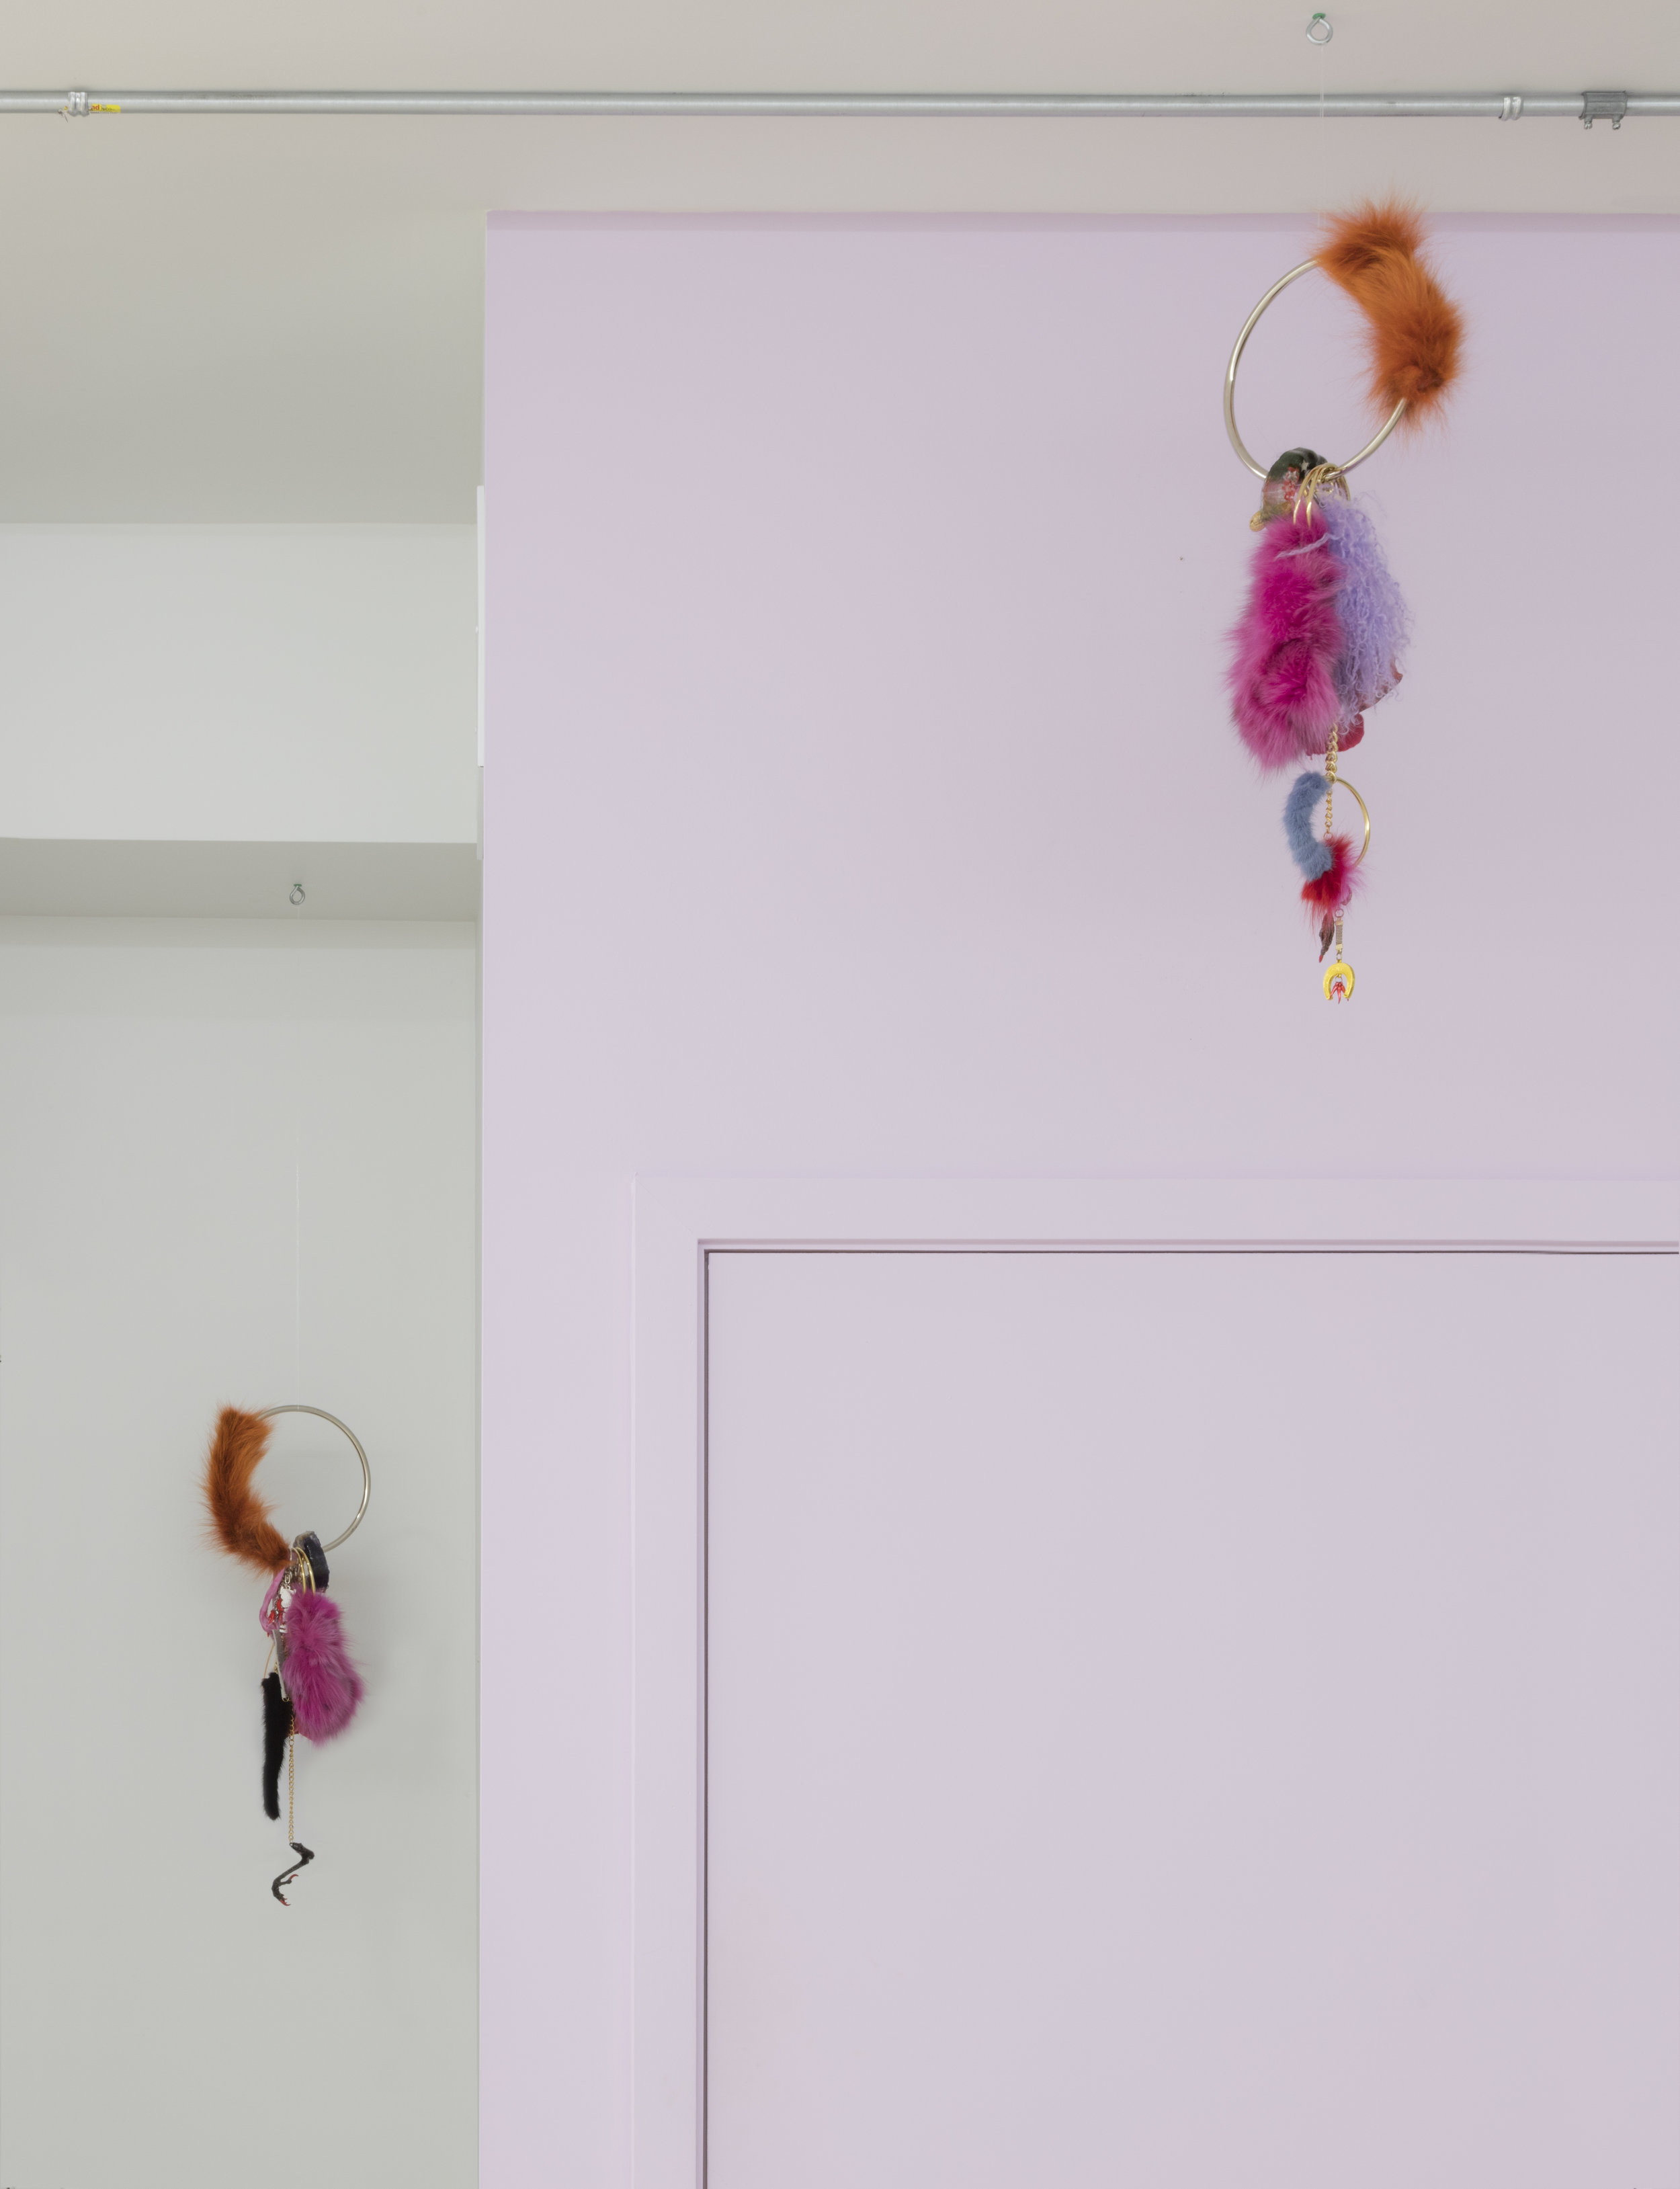 Athena Papadopolous in collaboration with MCC, Untitled & Untitled, 2016.  Image courtesy of L'Inconnue.